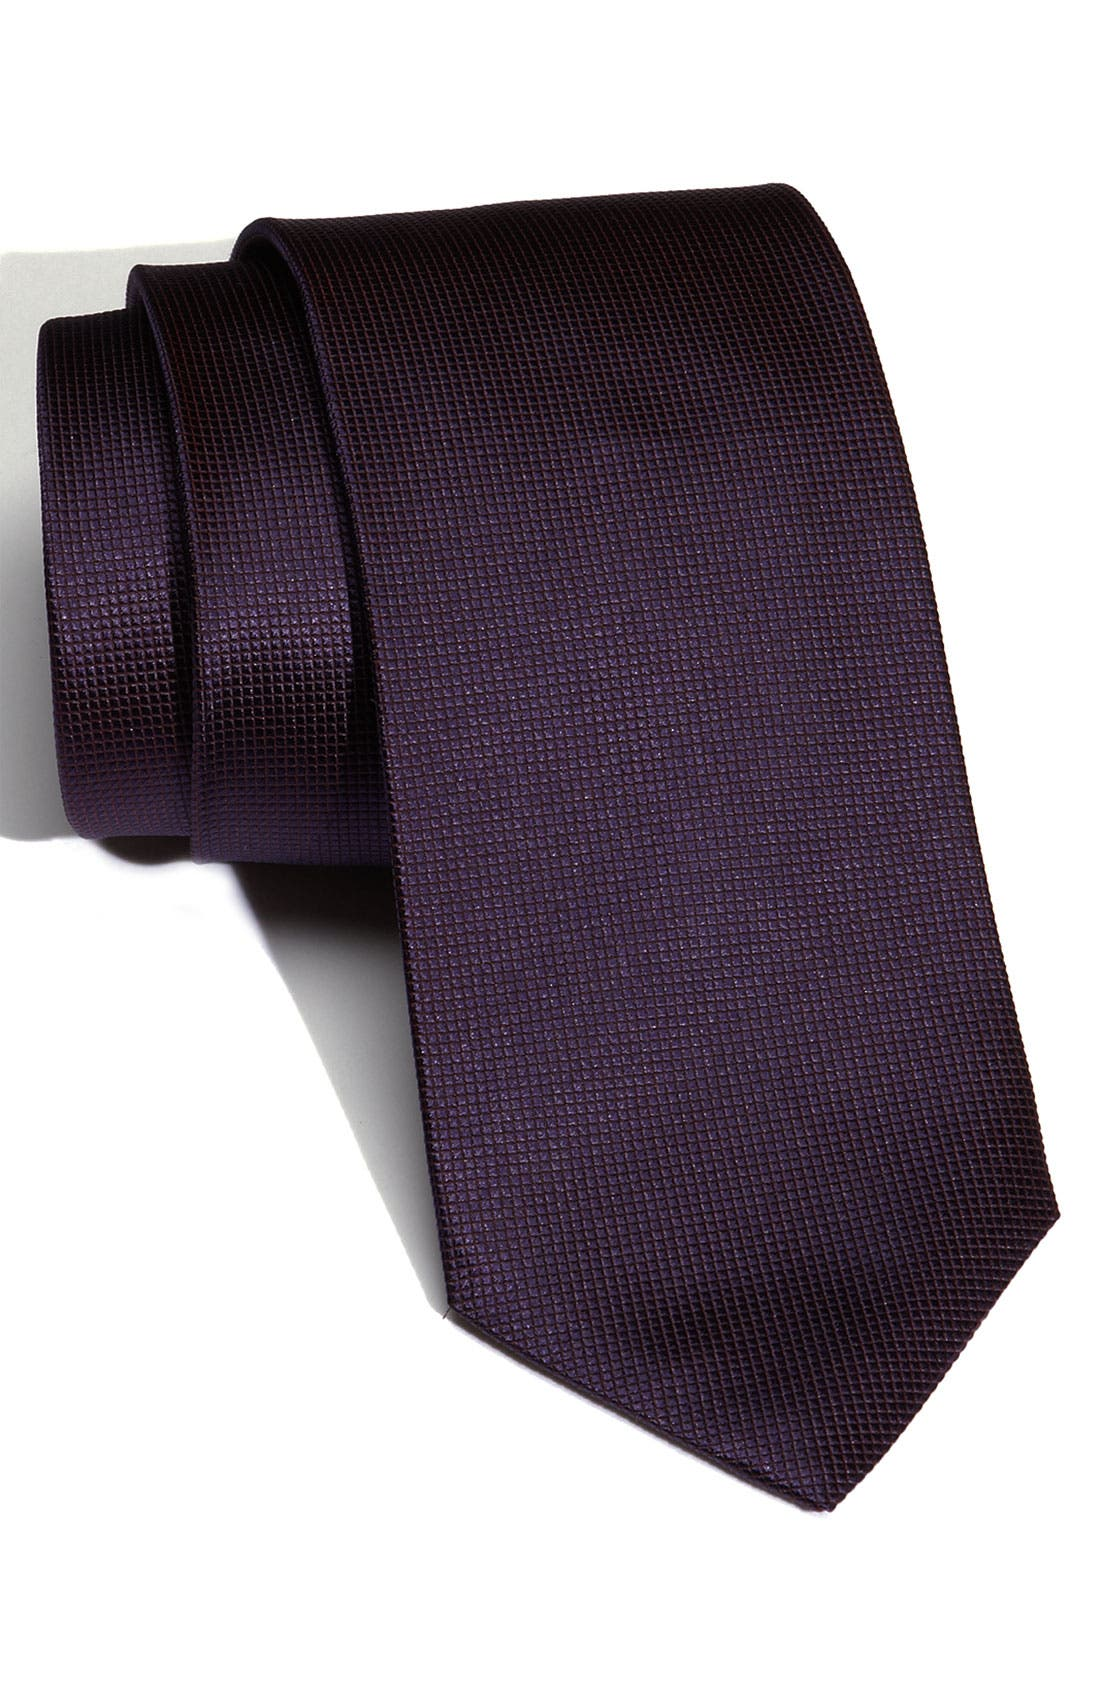 Alternate Image 1 Selected - BOSS Woven Silk Tie